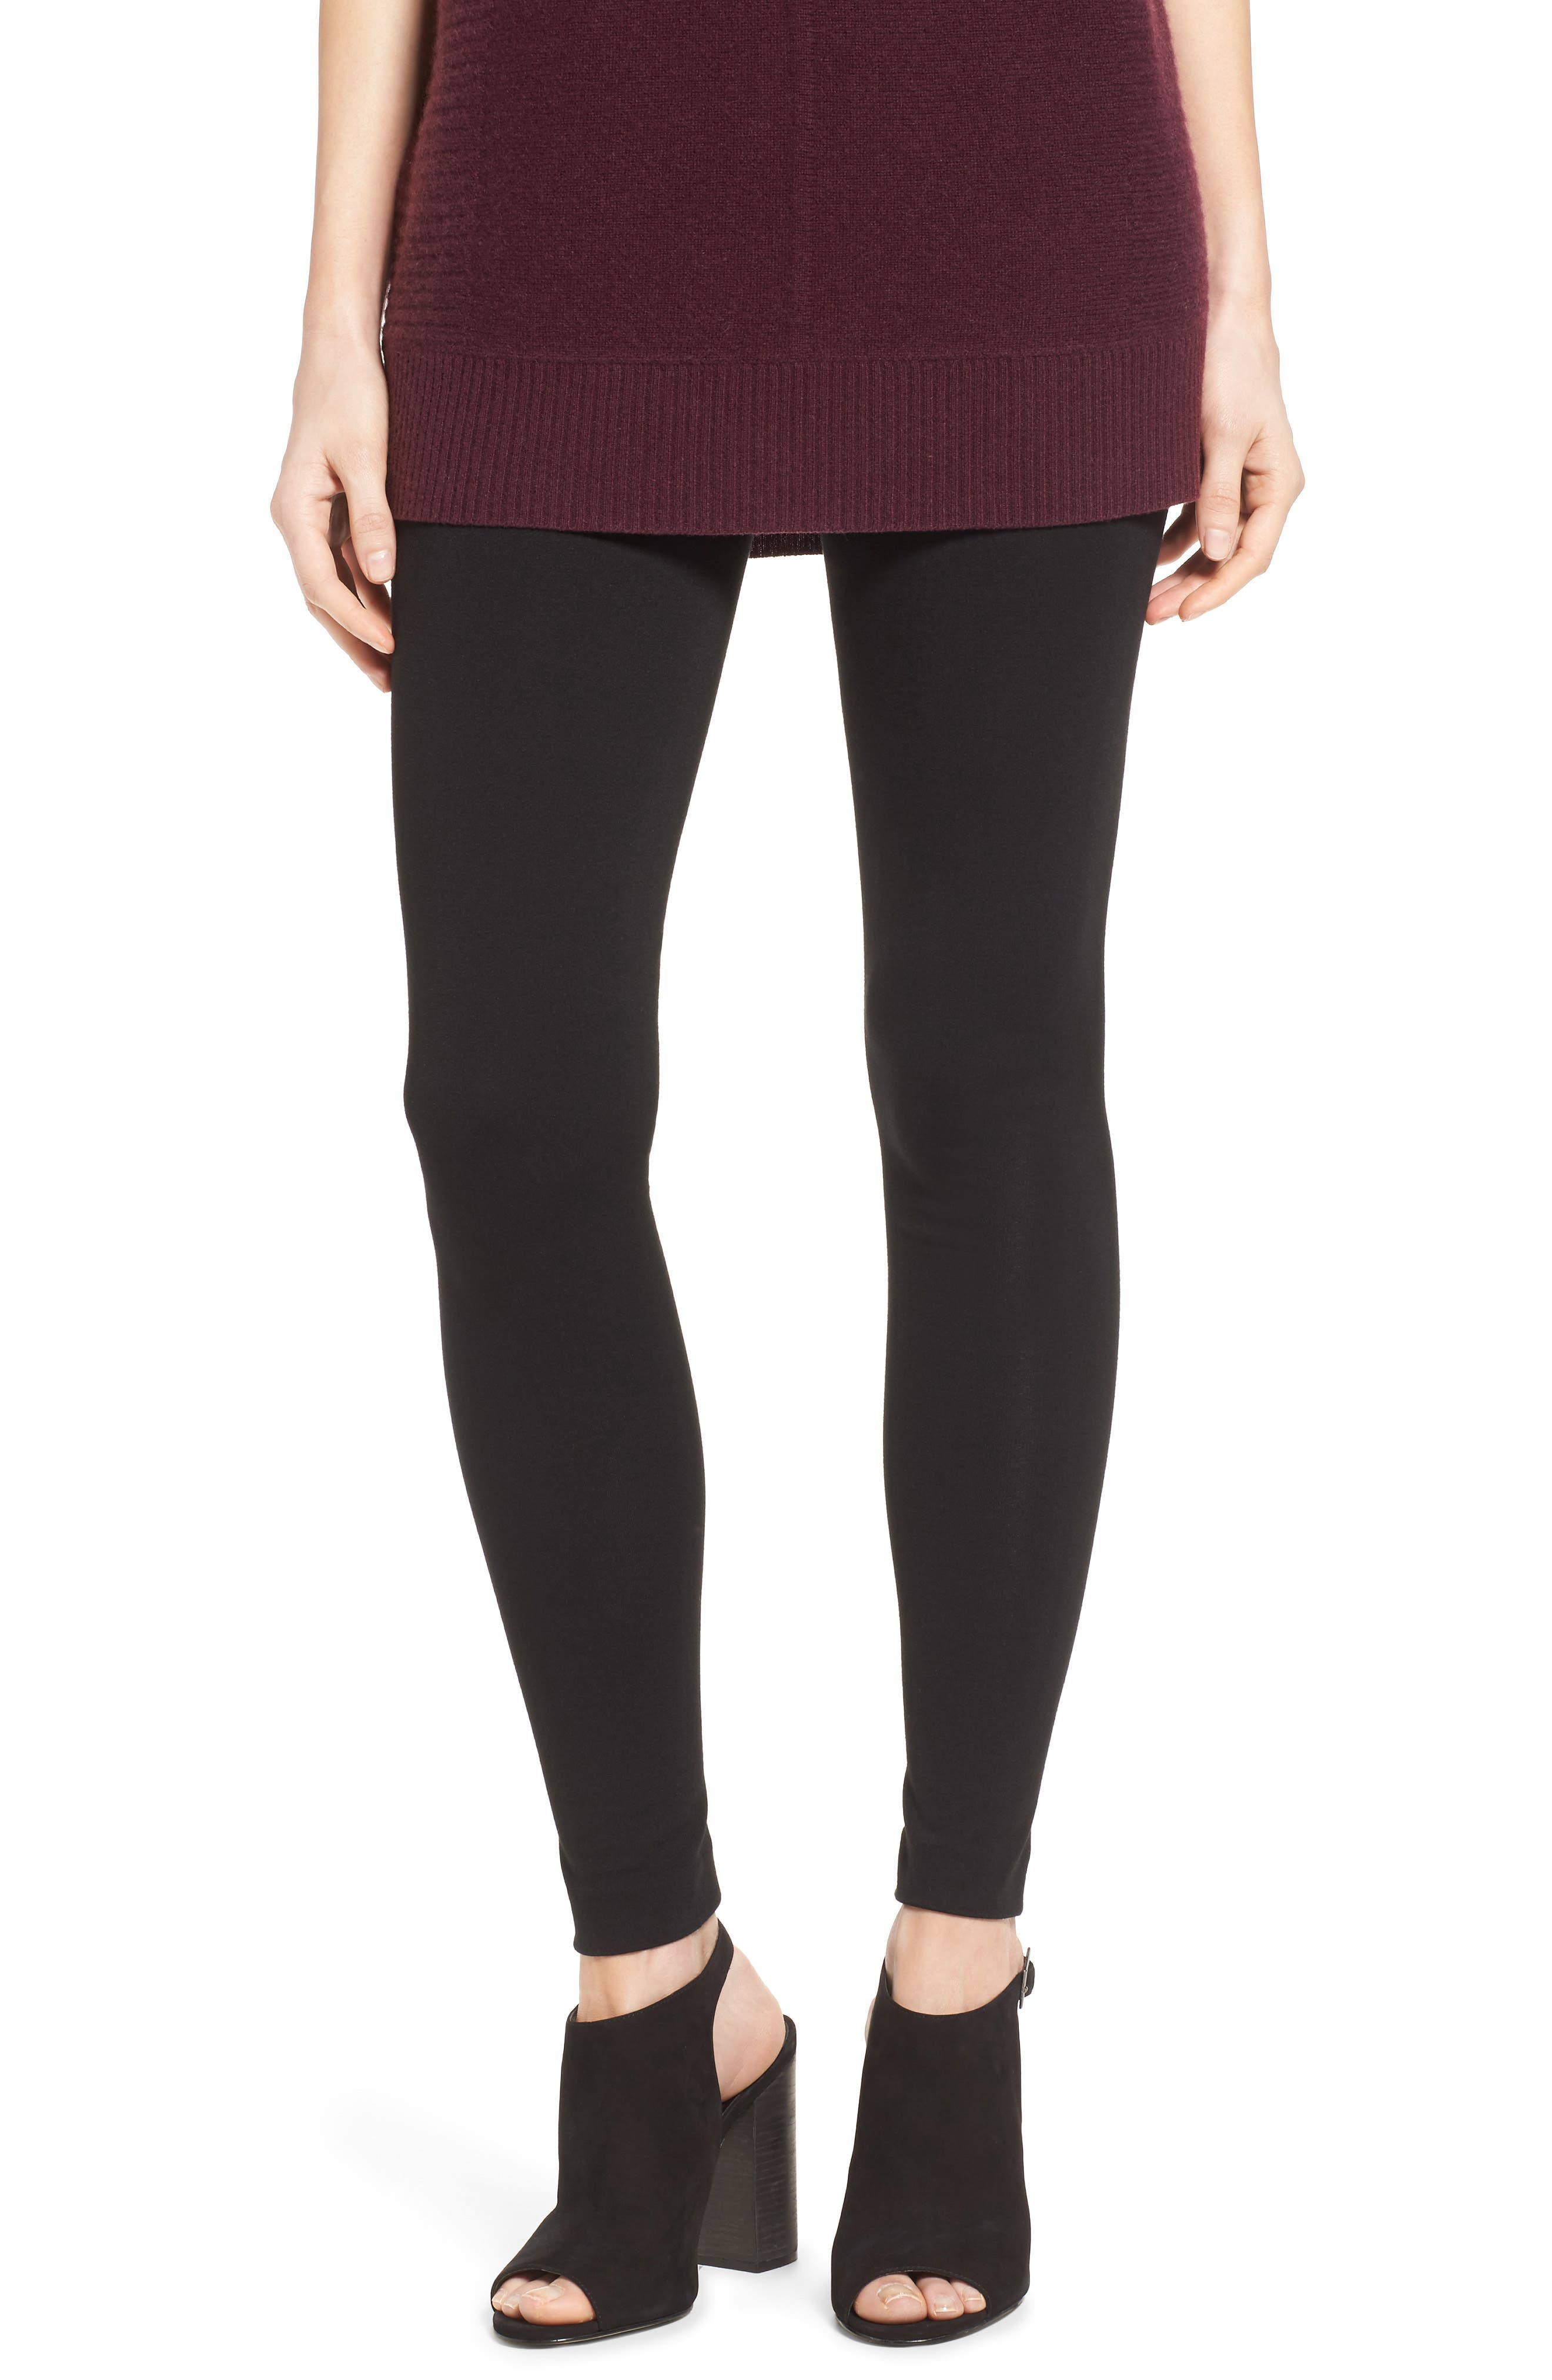 Alternate Image 1 Selected - Two by Vince Camuto Seamed Back Leggings (Regular & Petite)